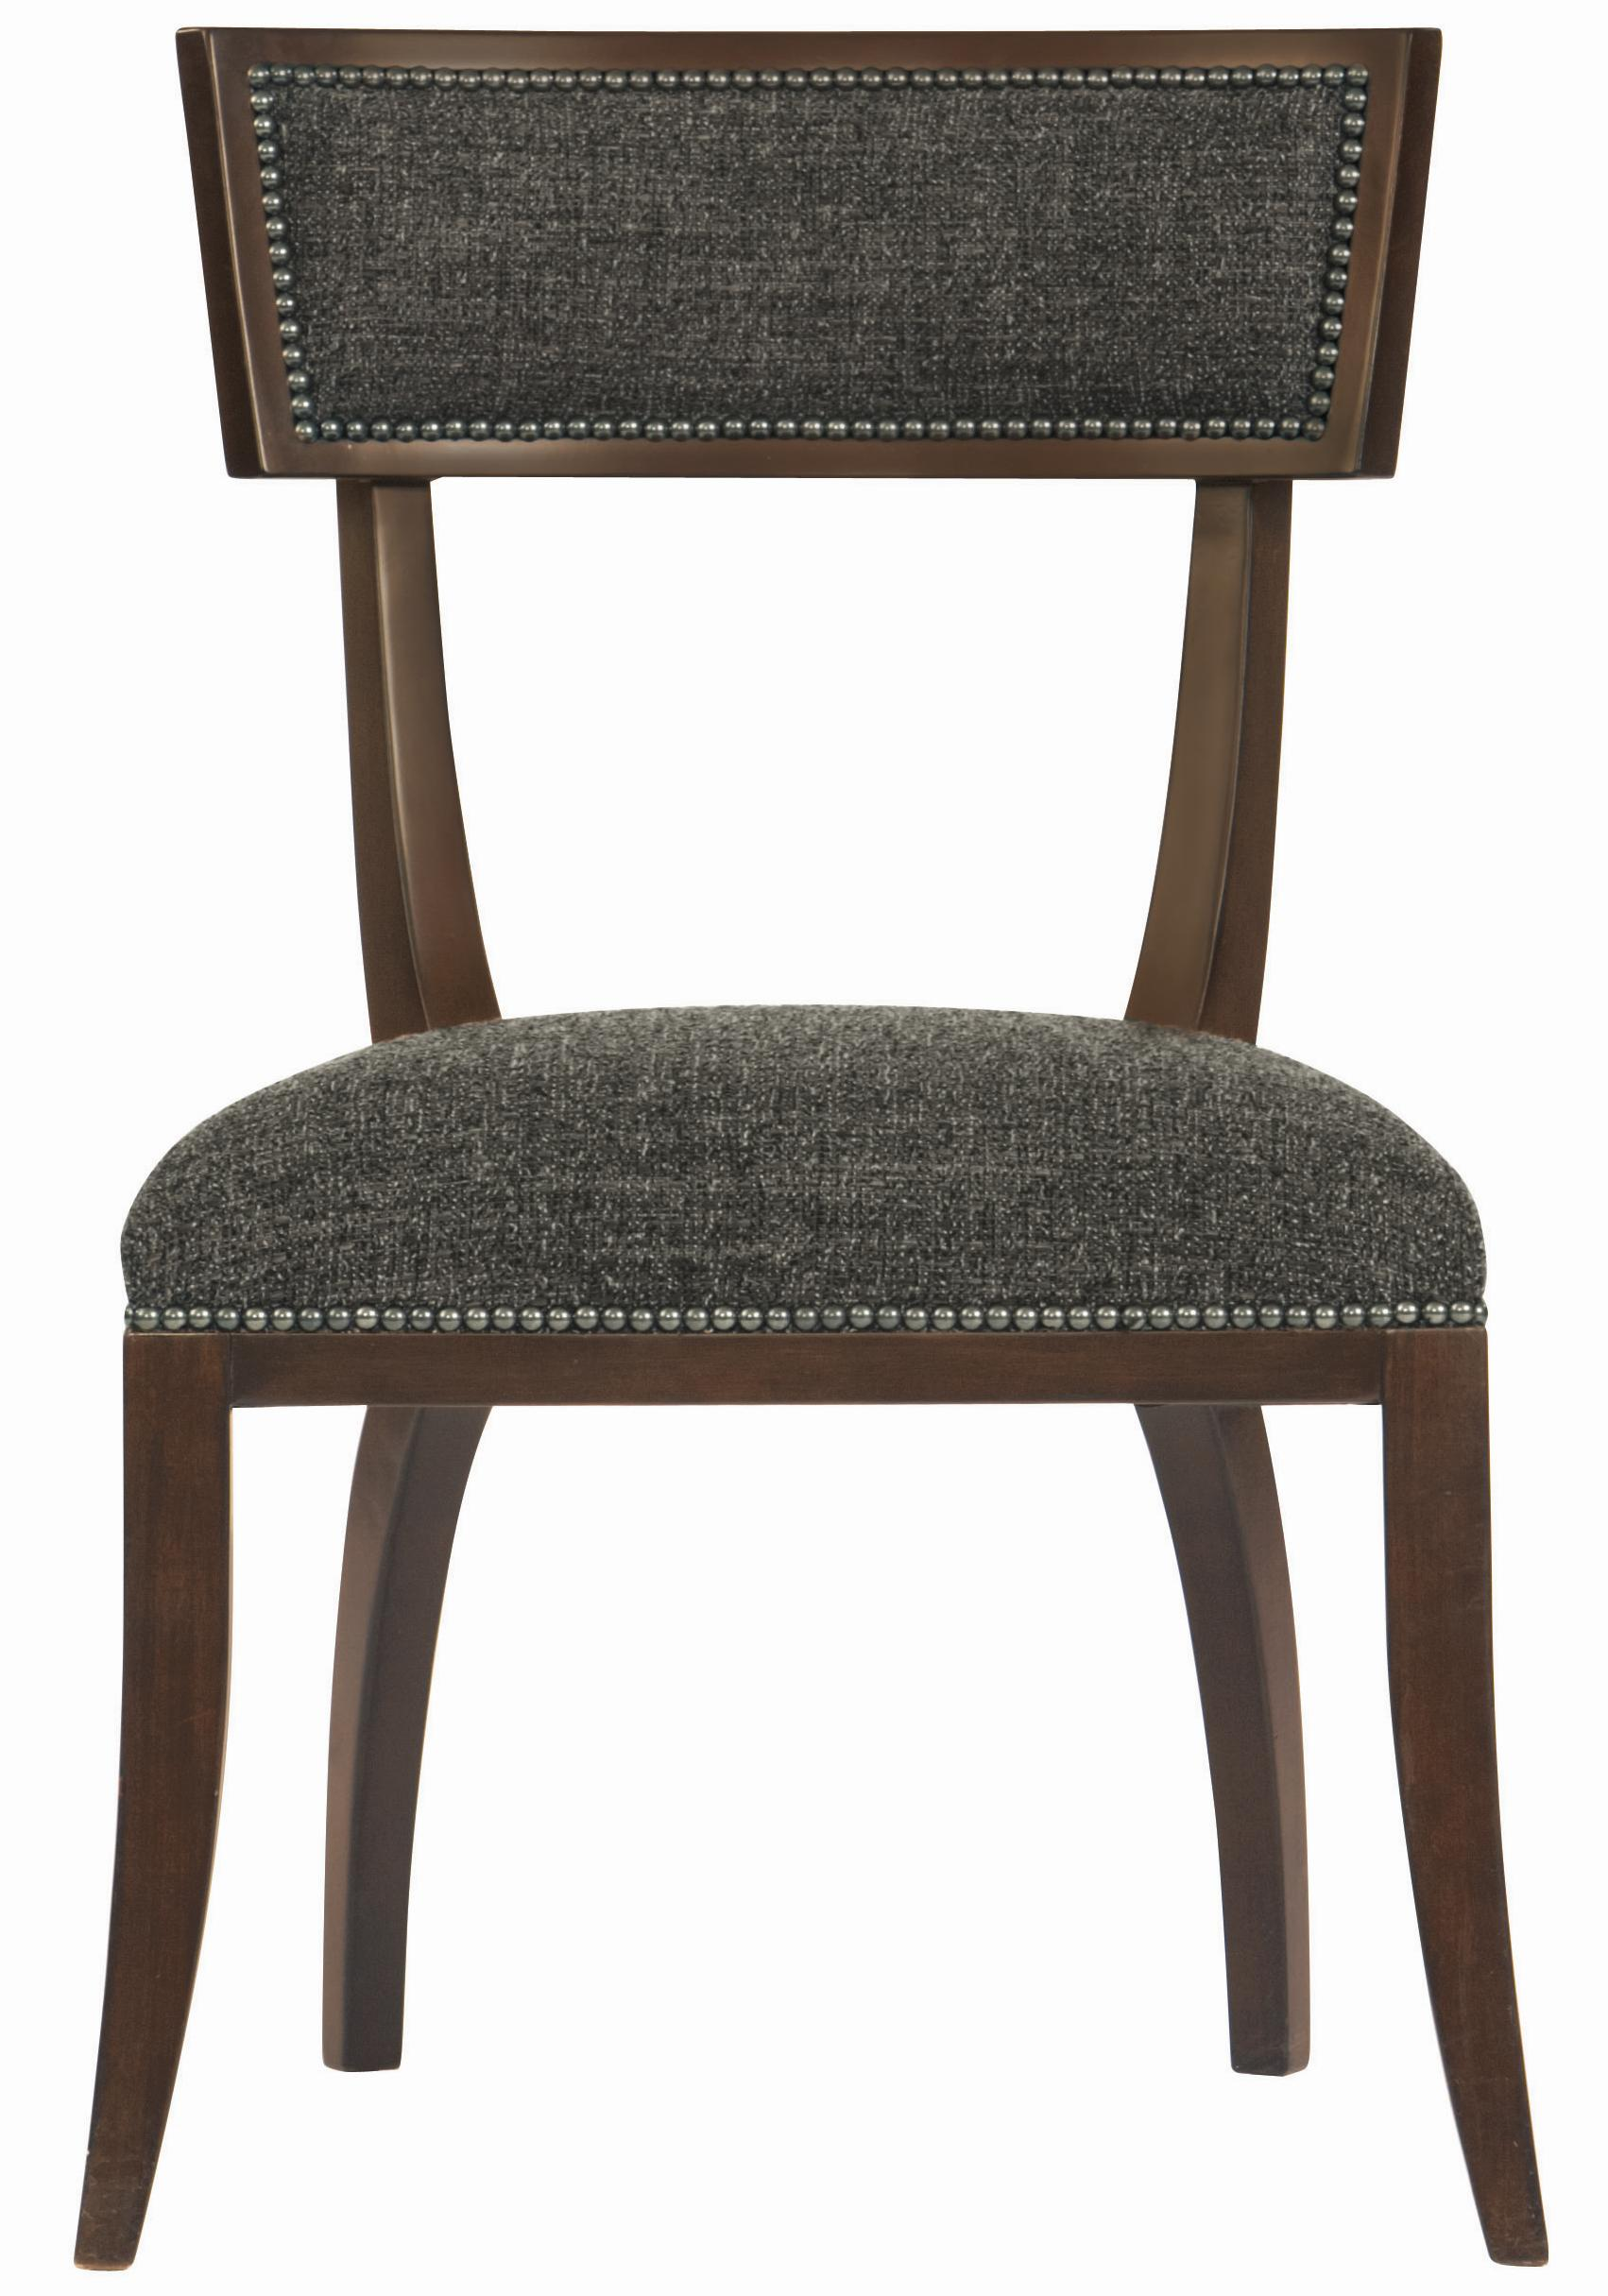 Darvin Furniture Living Room Chairs